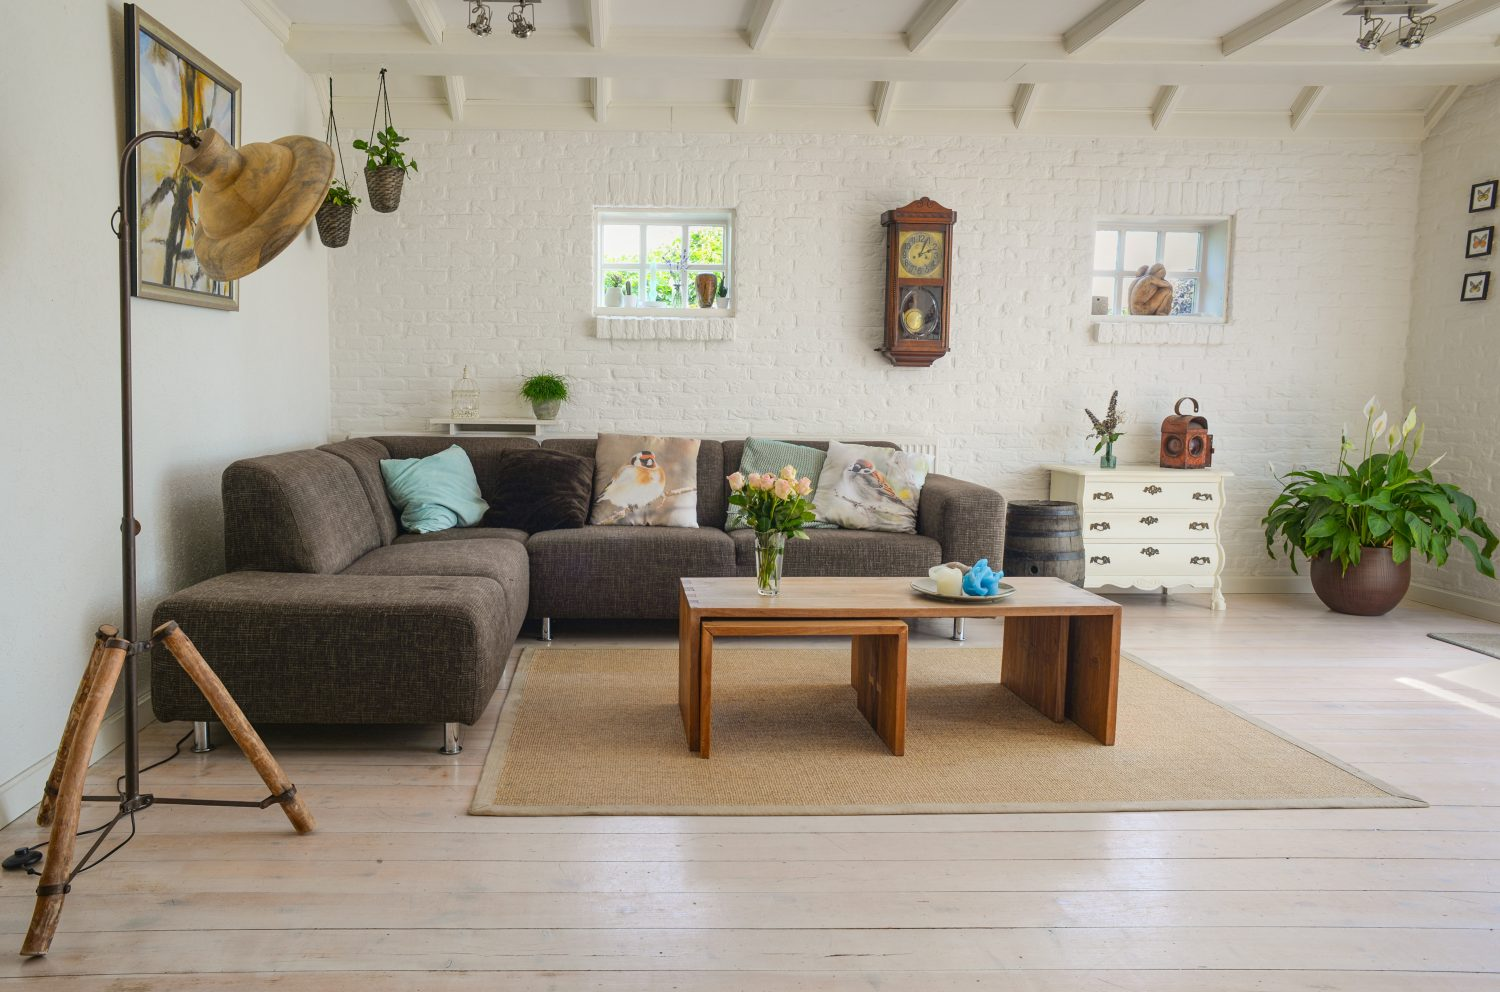 Easy ways to create extra space in your home